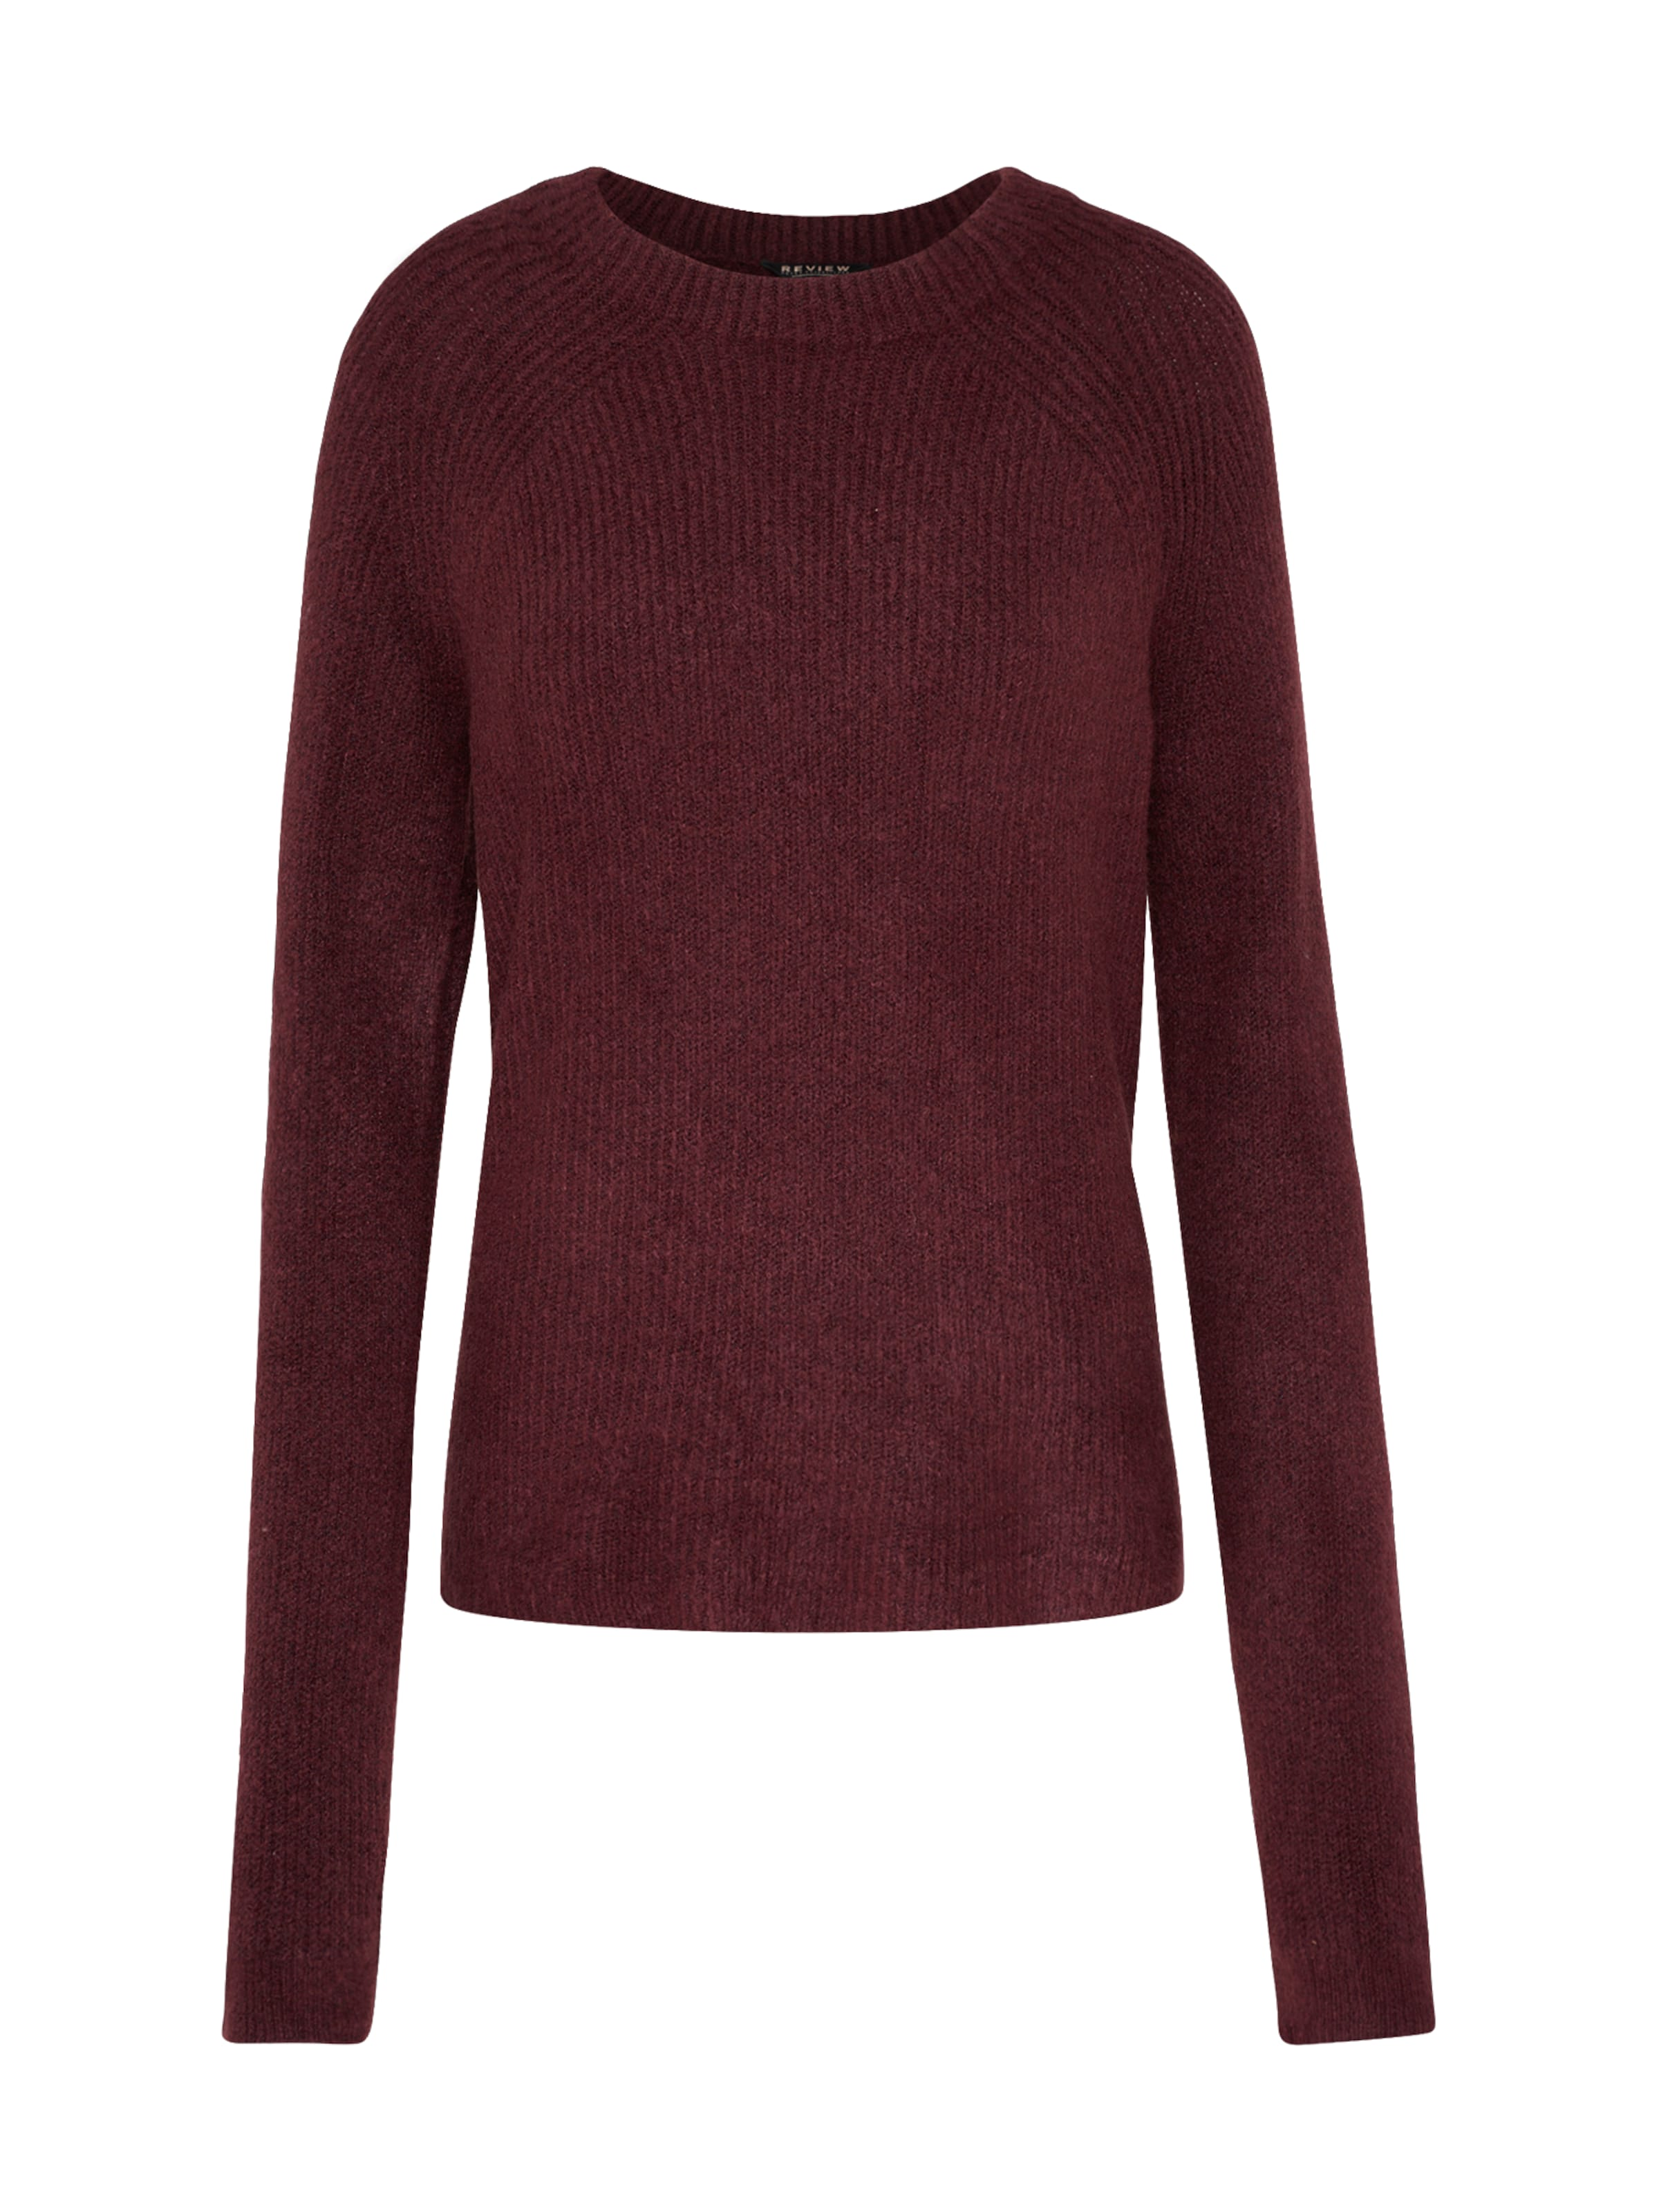 In Turtle Rib' Pullover 'basic Review Aubergine SzVMqUp